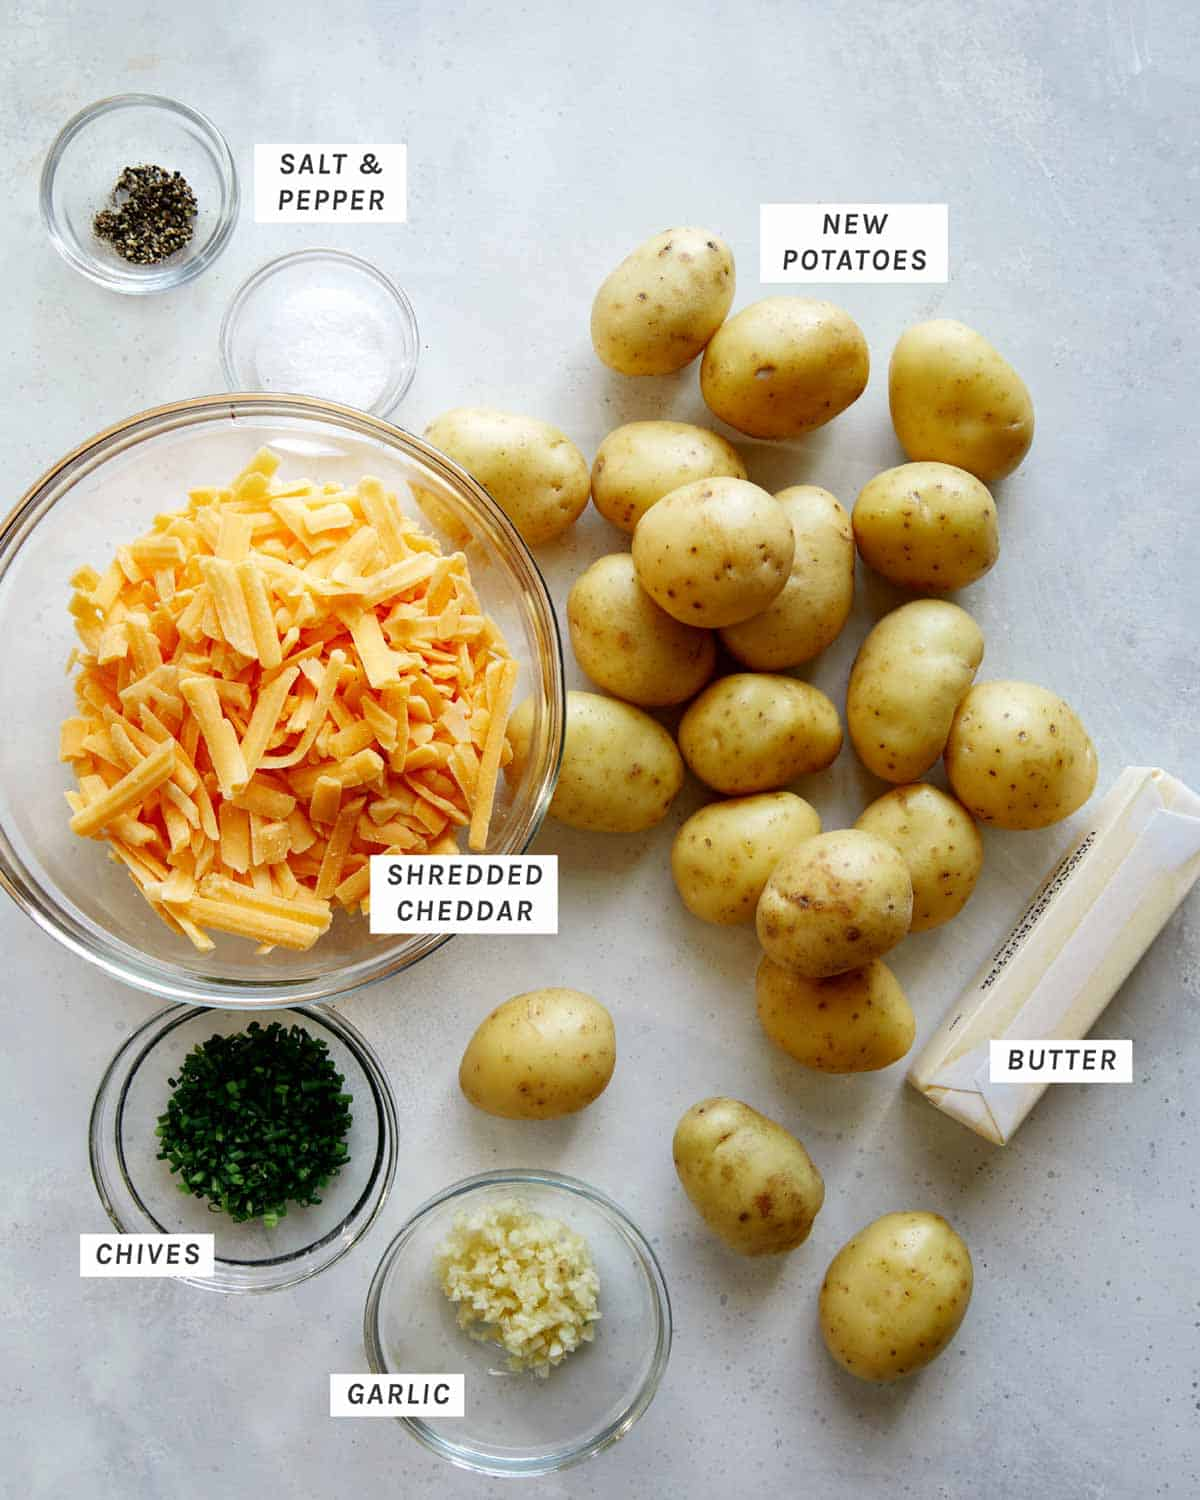 Ingredients to make hasselback potatoes all laid out on a kitchen counter.